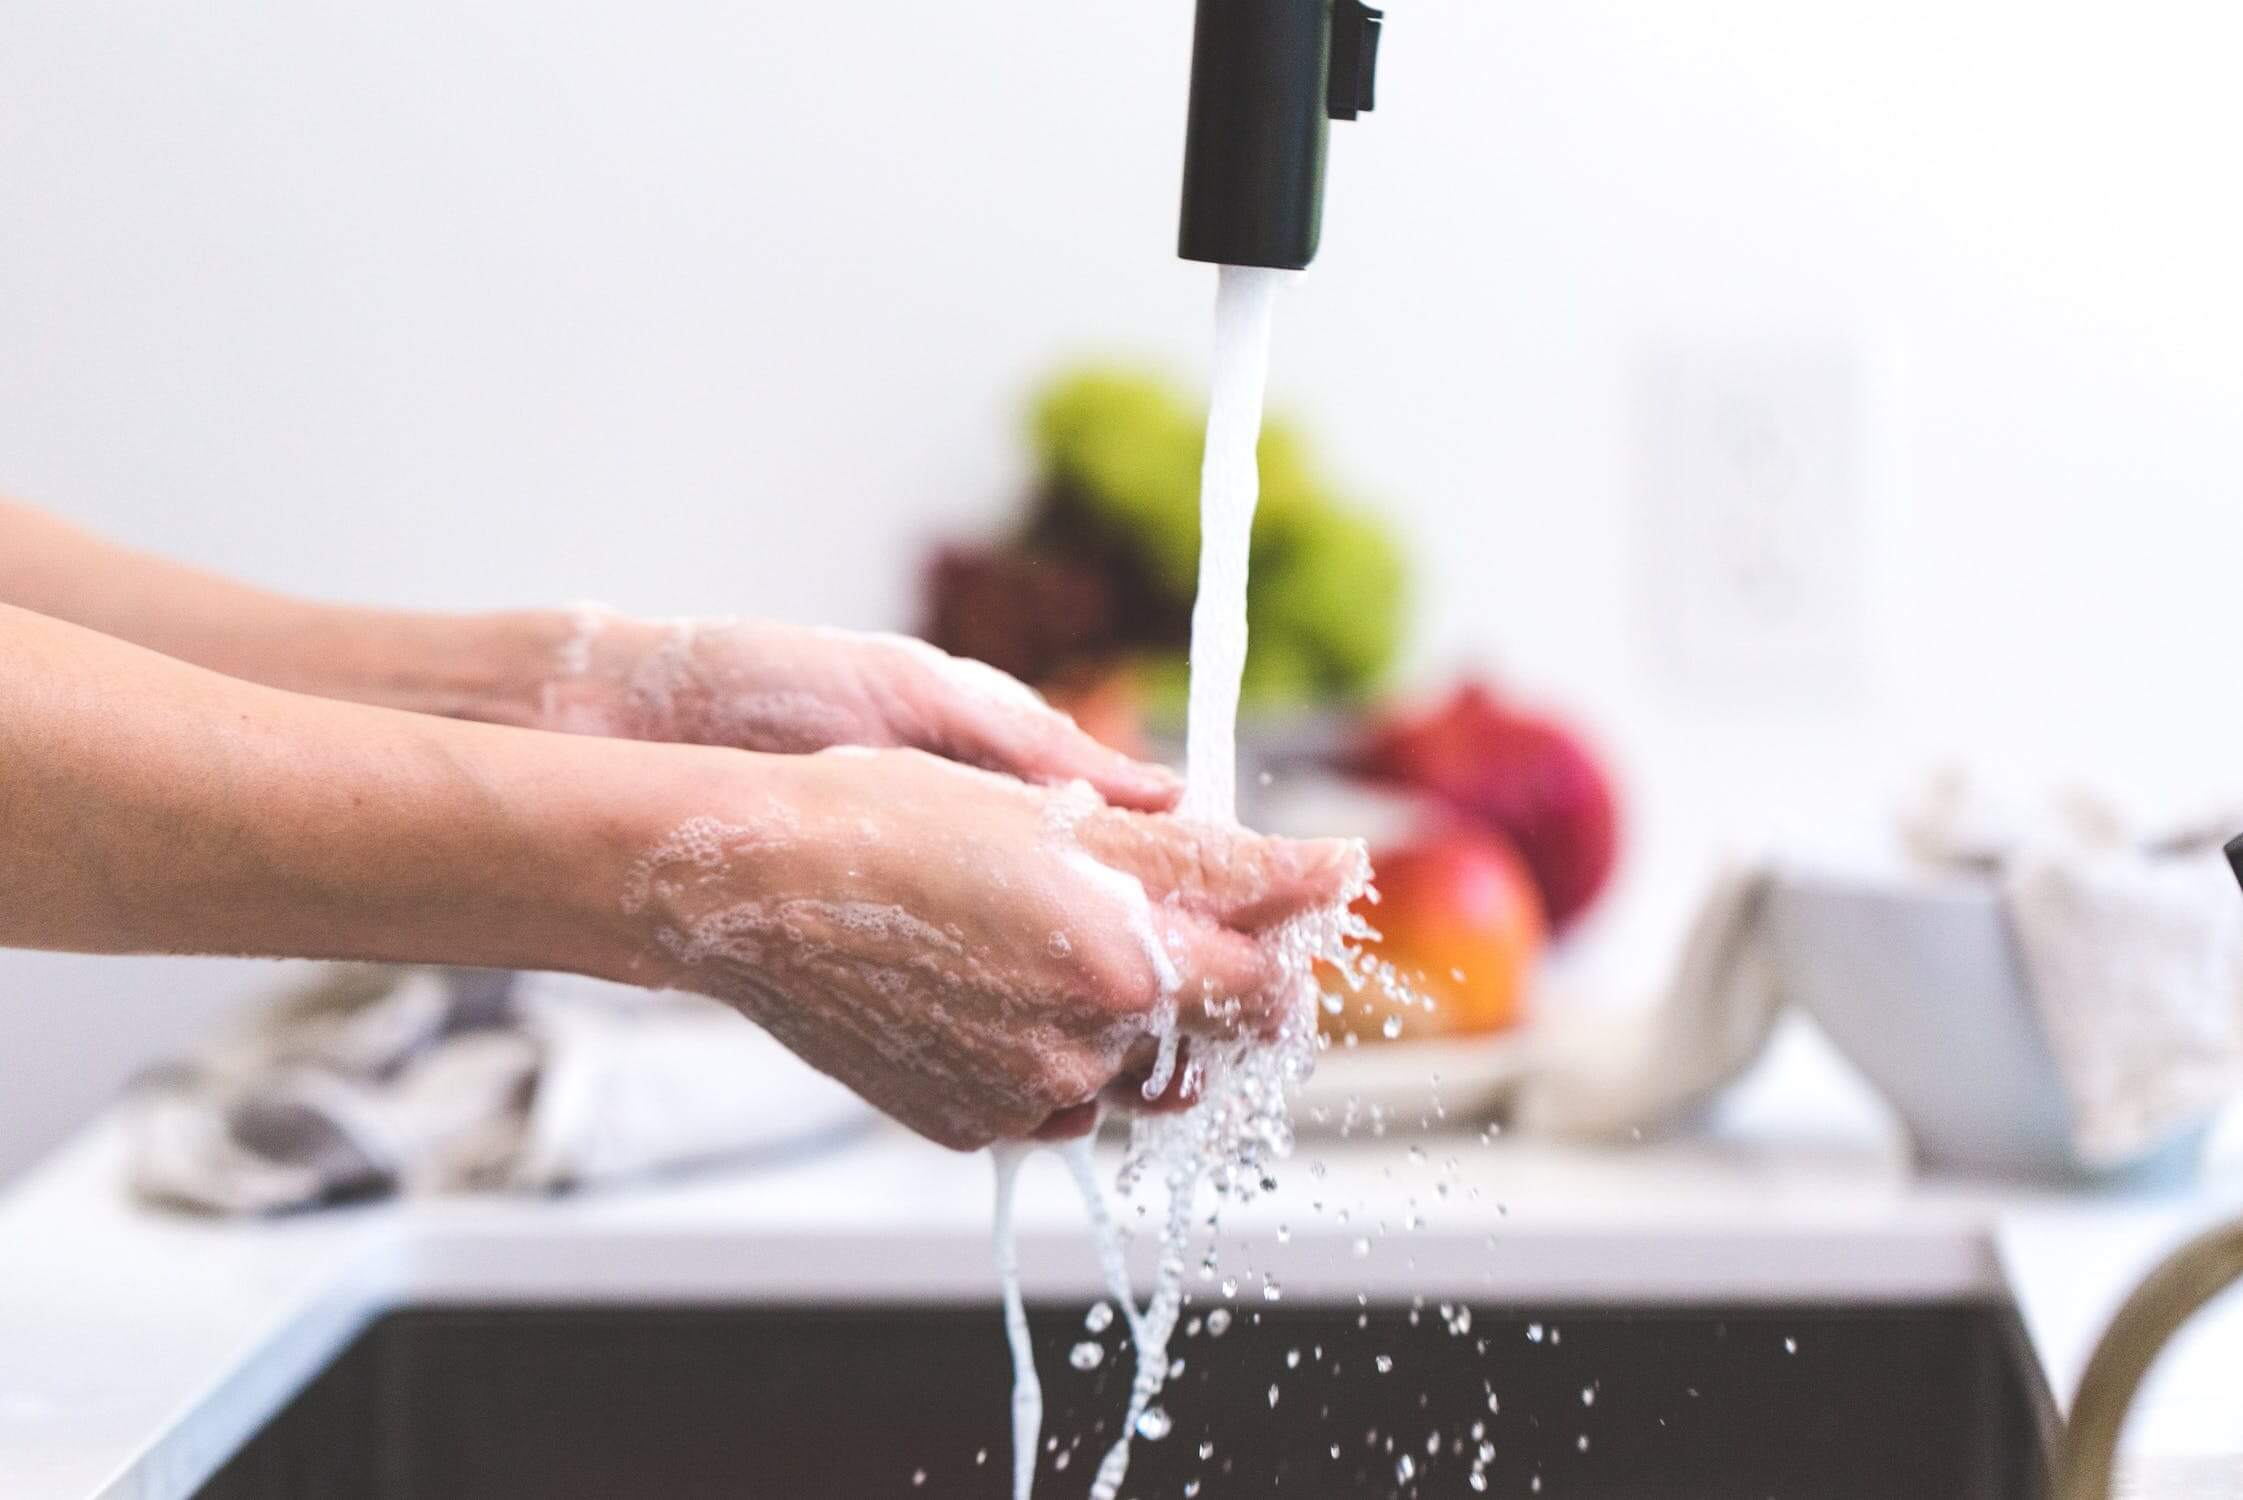 An individual washing their hands in order to prevent coronavirus